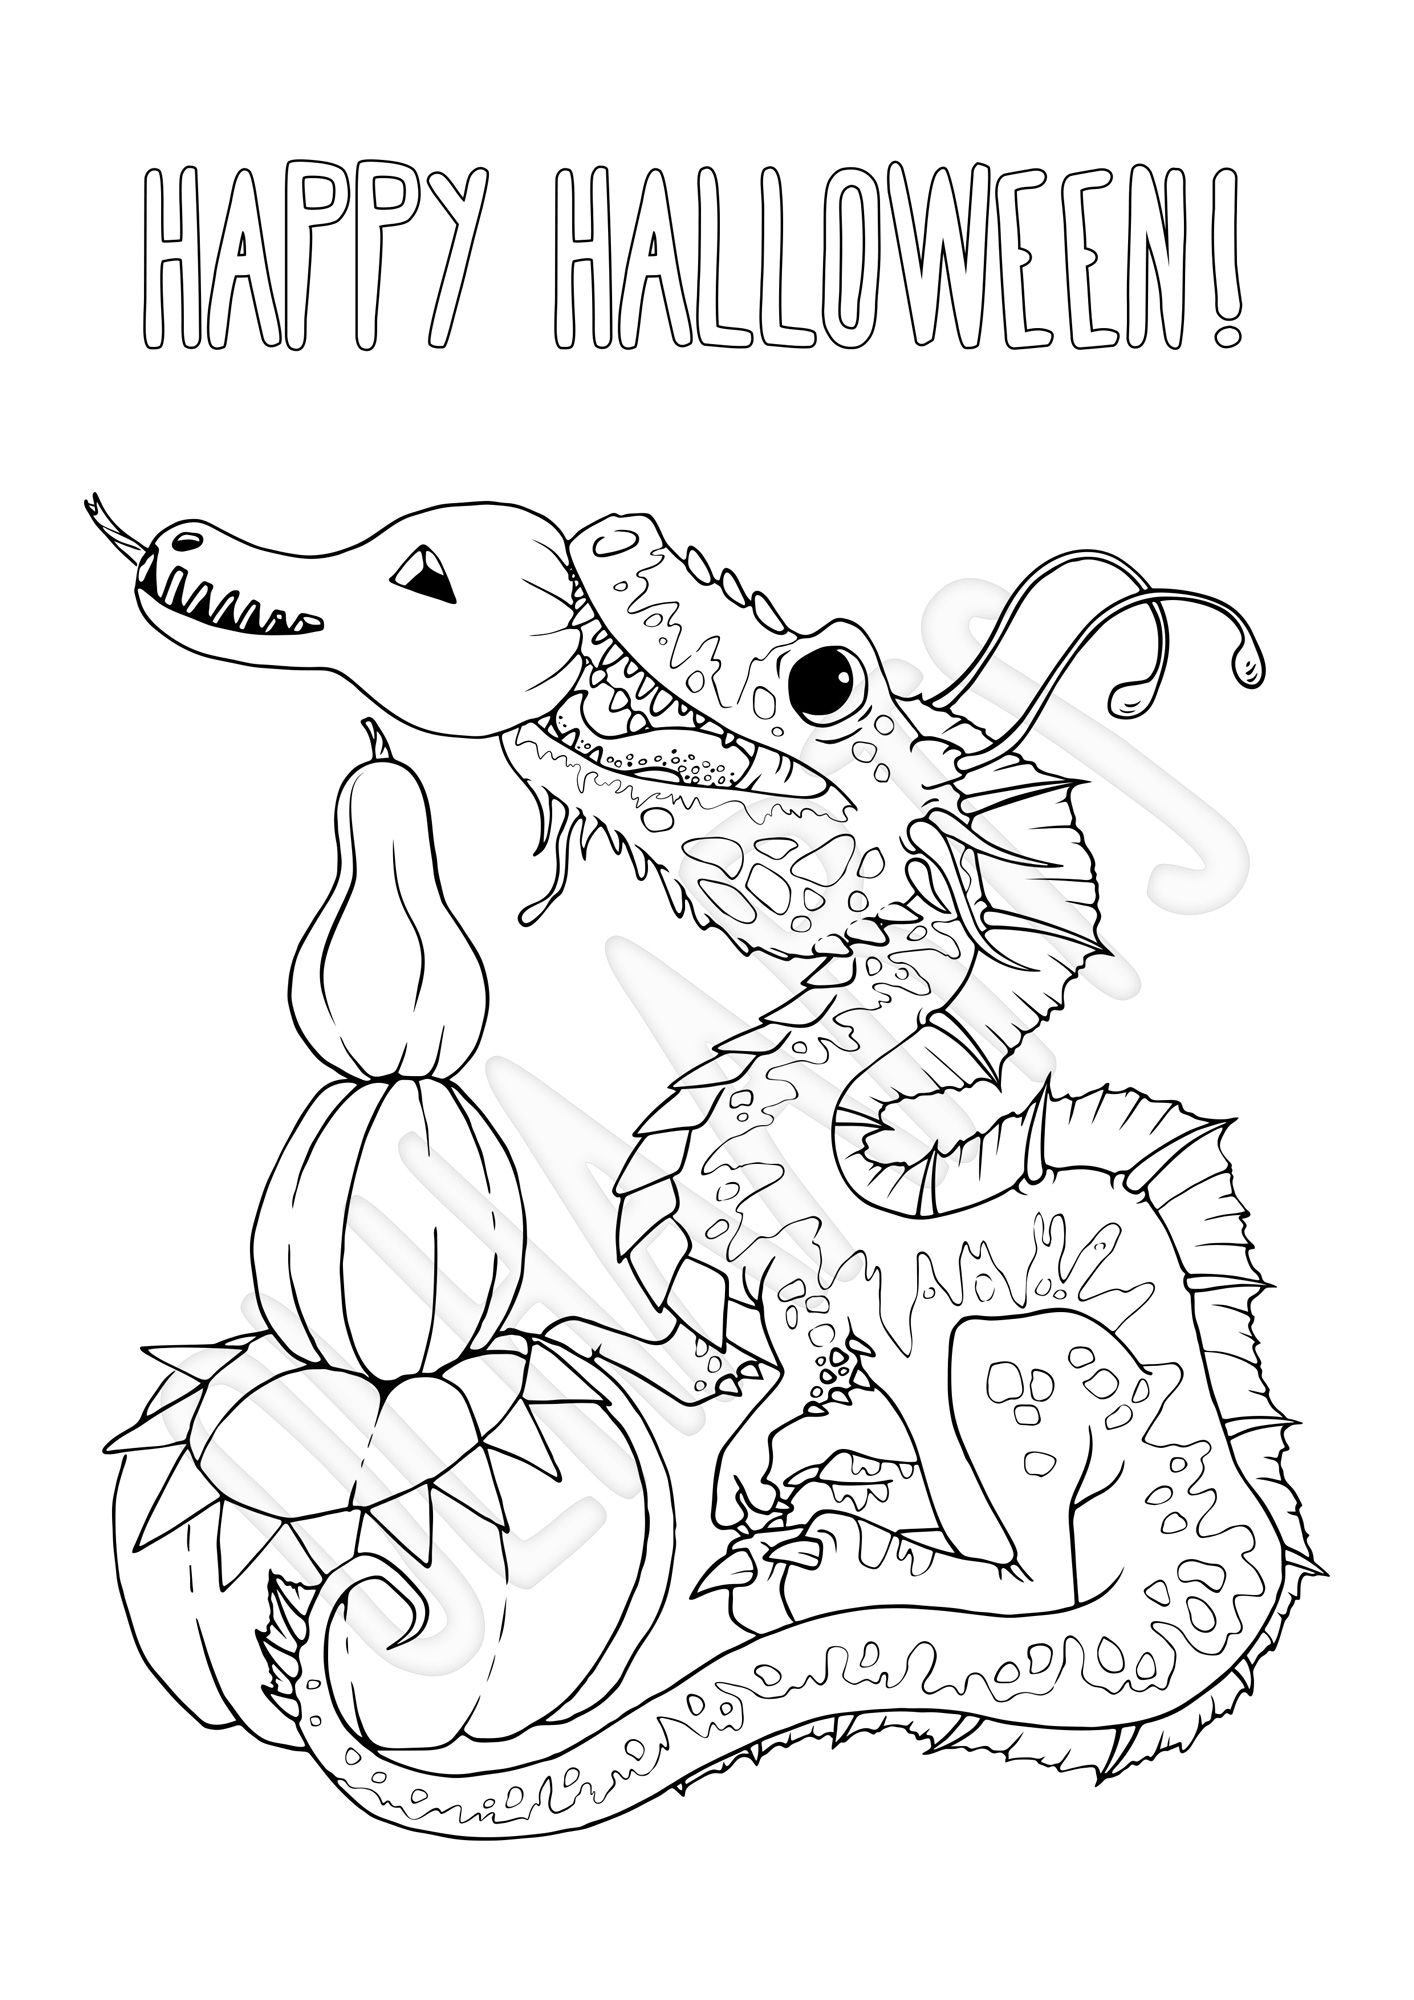 d is for dragon coloring page pin on coloring book page is d for dragon coloring